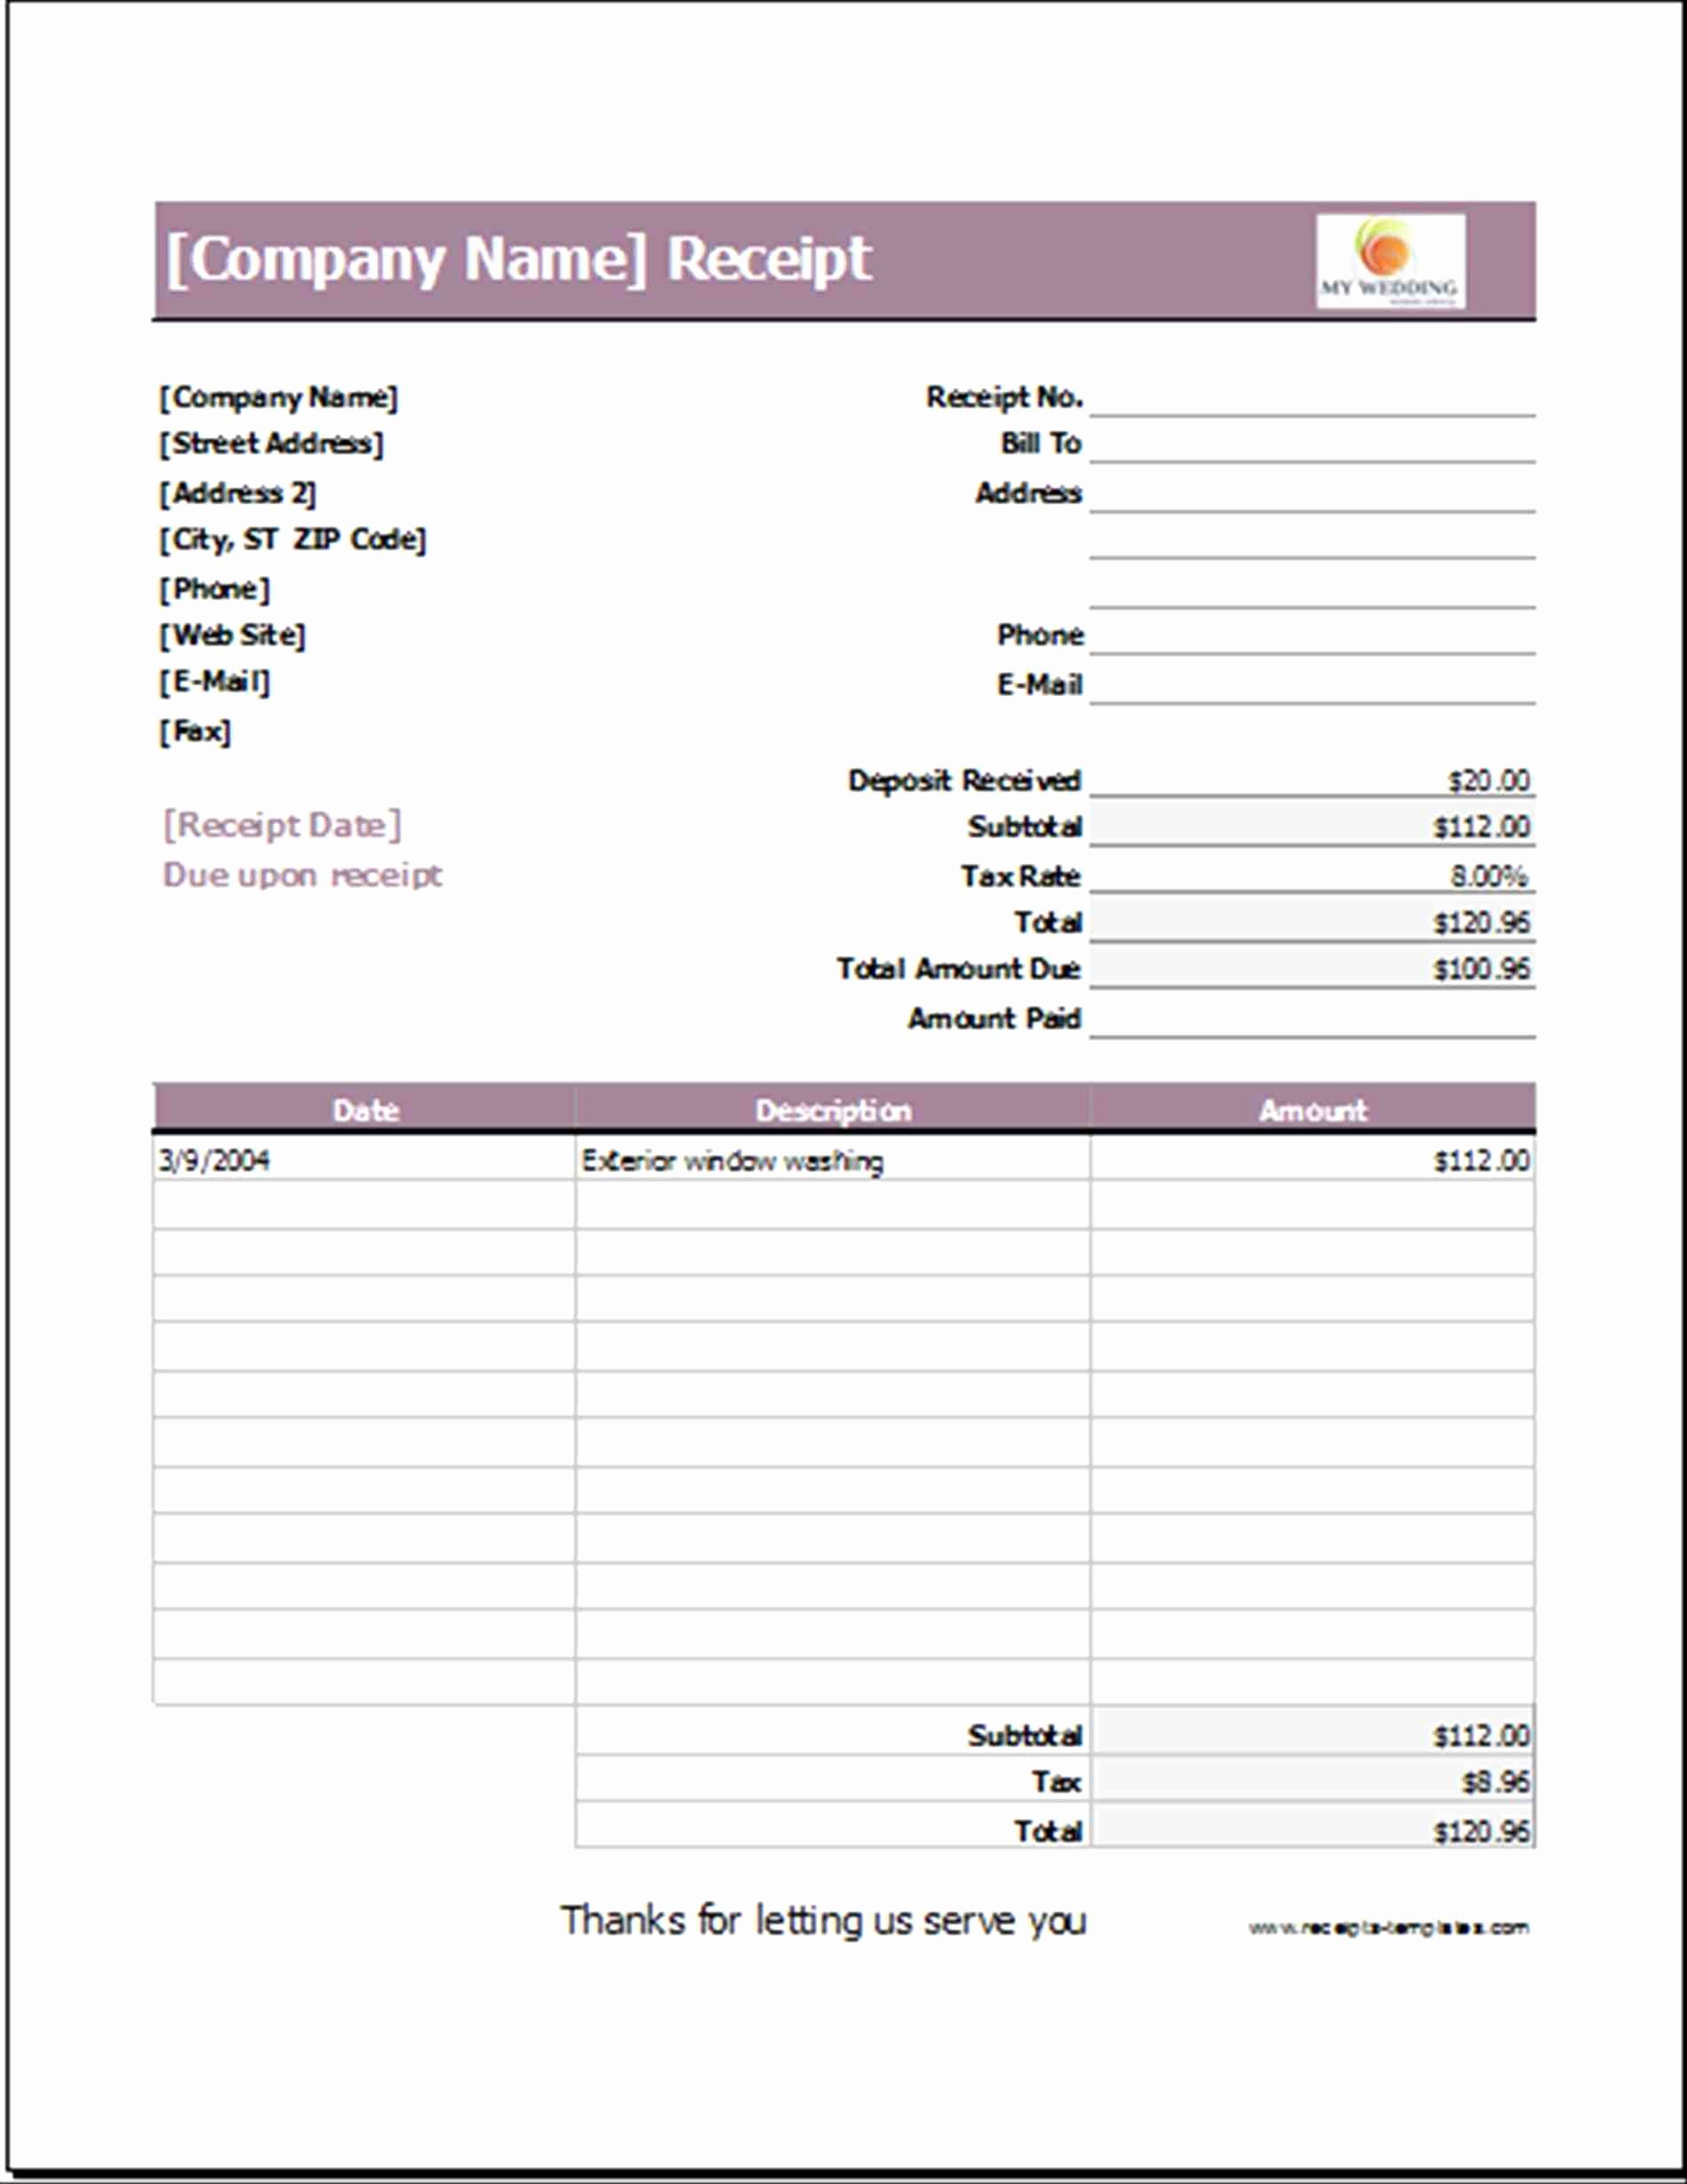 Event Planner Invoice Template Fresh With Images Receipt